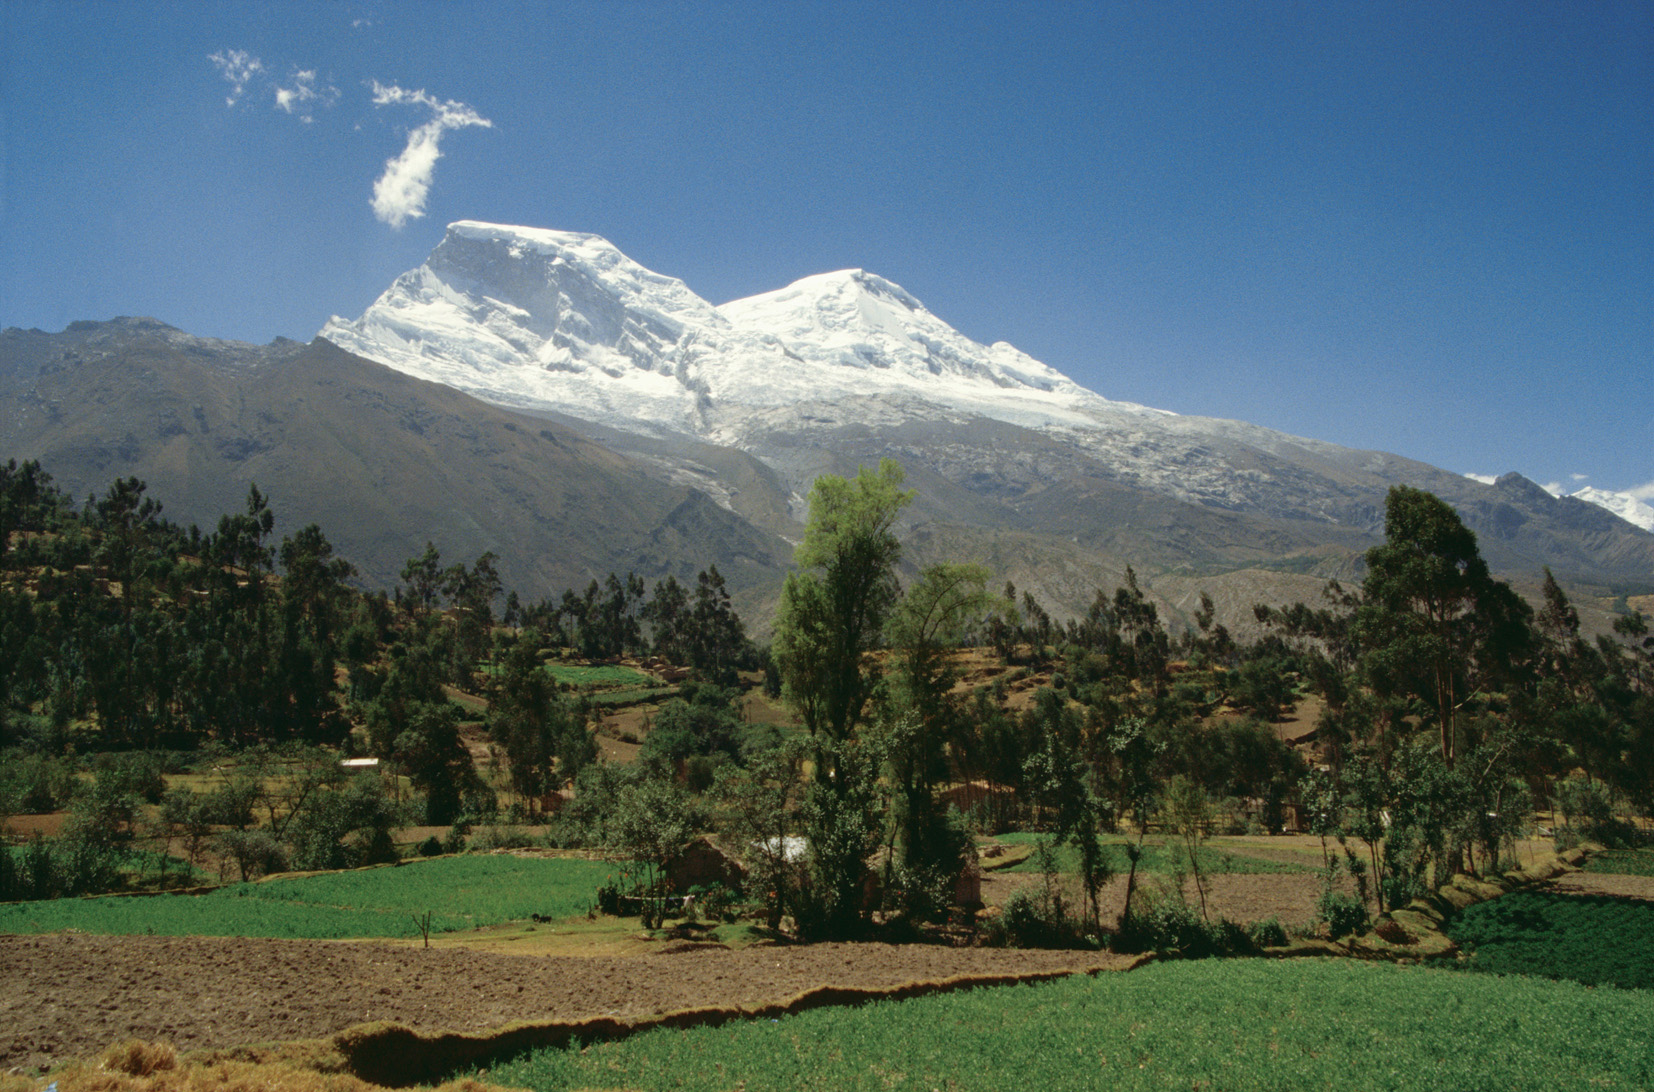 Nevado Huascarán